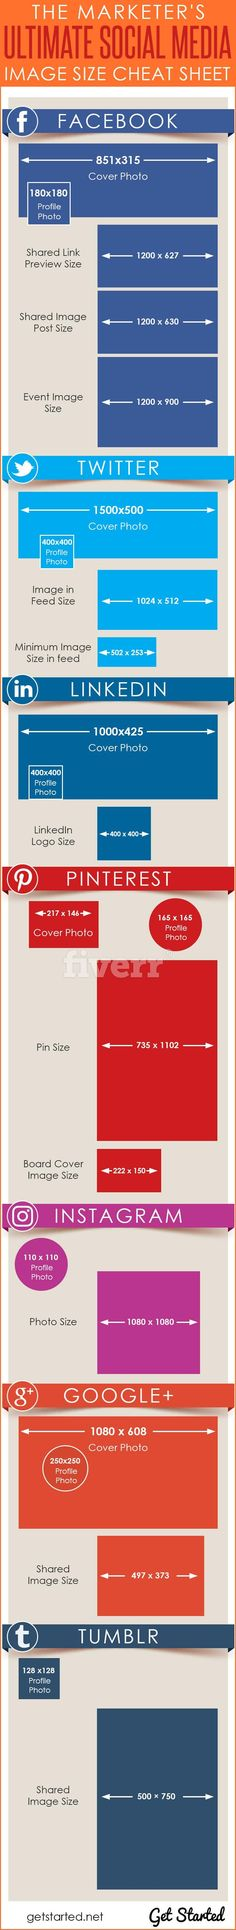 The Marketer's Ultimate Social Media Image Sizes Cheat Sheet for 2017 - Get the Embed Code for your website here now!